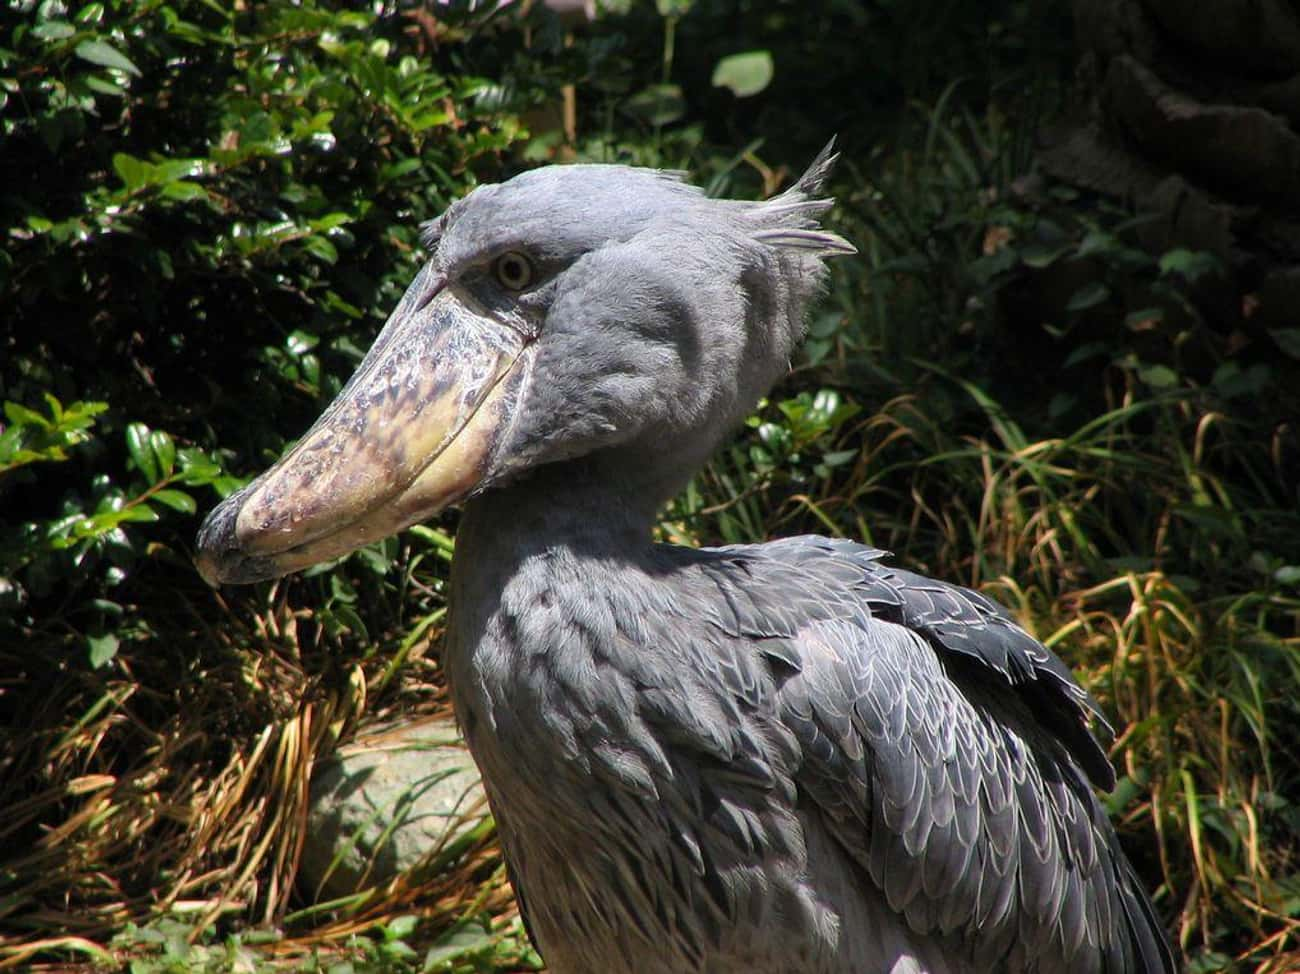 The Shoebill's Beak Could  is listed (or ranked) 3 on the list The Weirdest And Scariest Bird Beaks